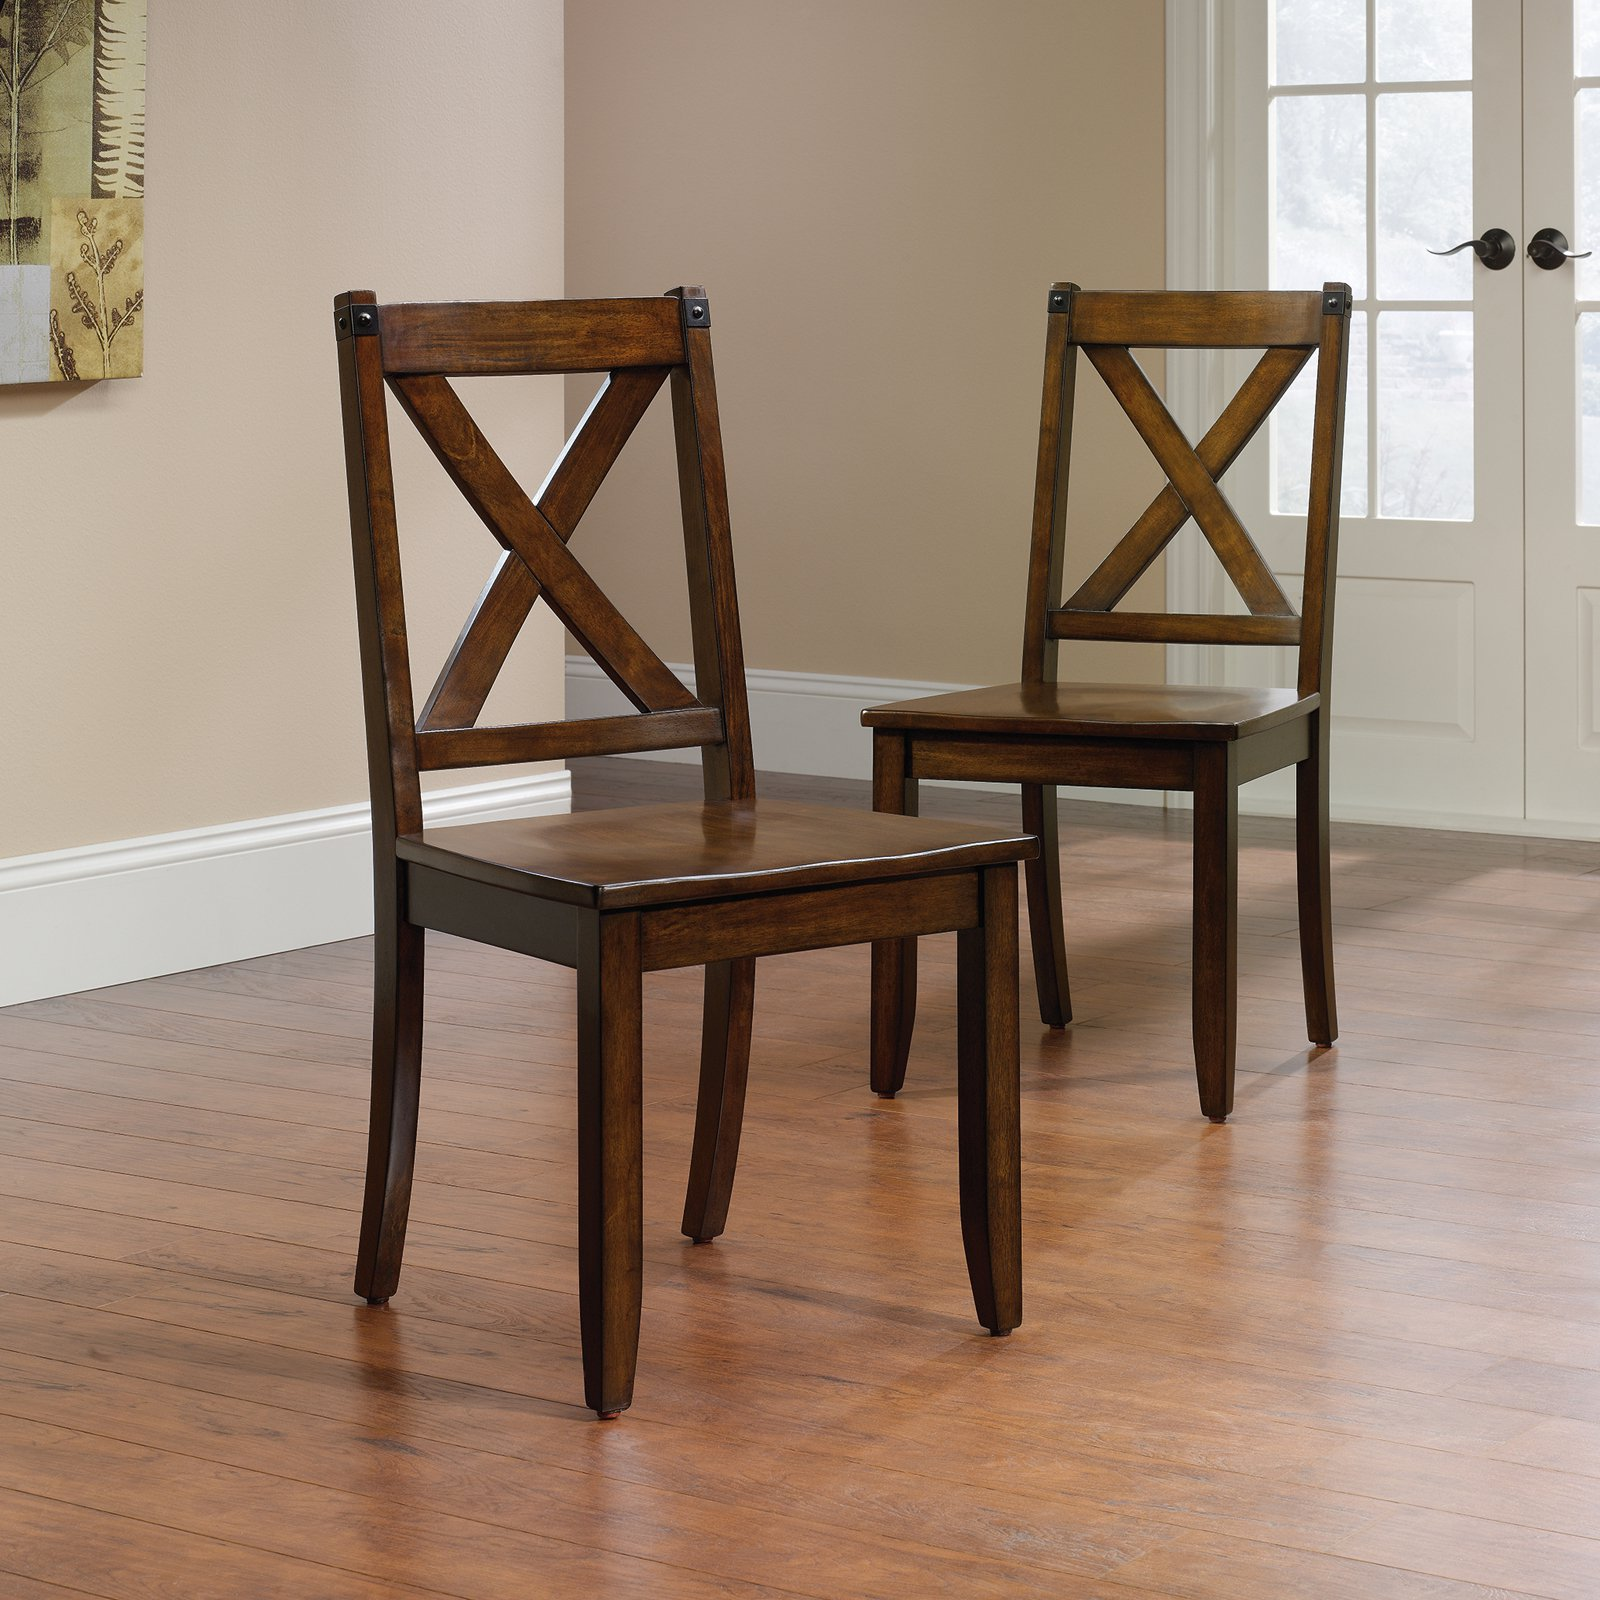 Sauder Carson Forge X Back Chairs, 2 Pack, Mahogany Finish